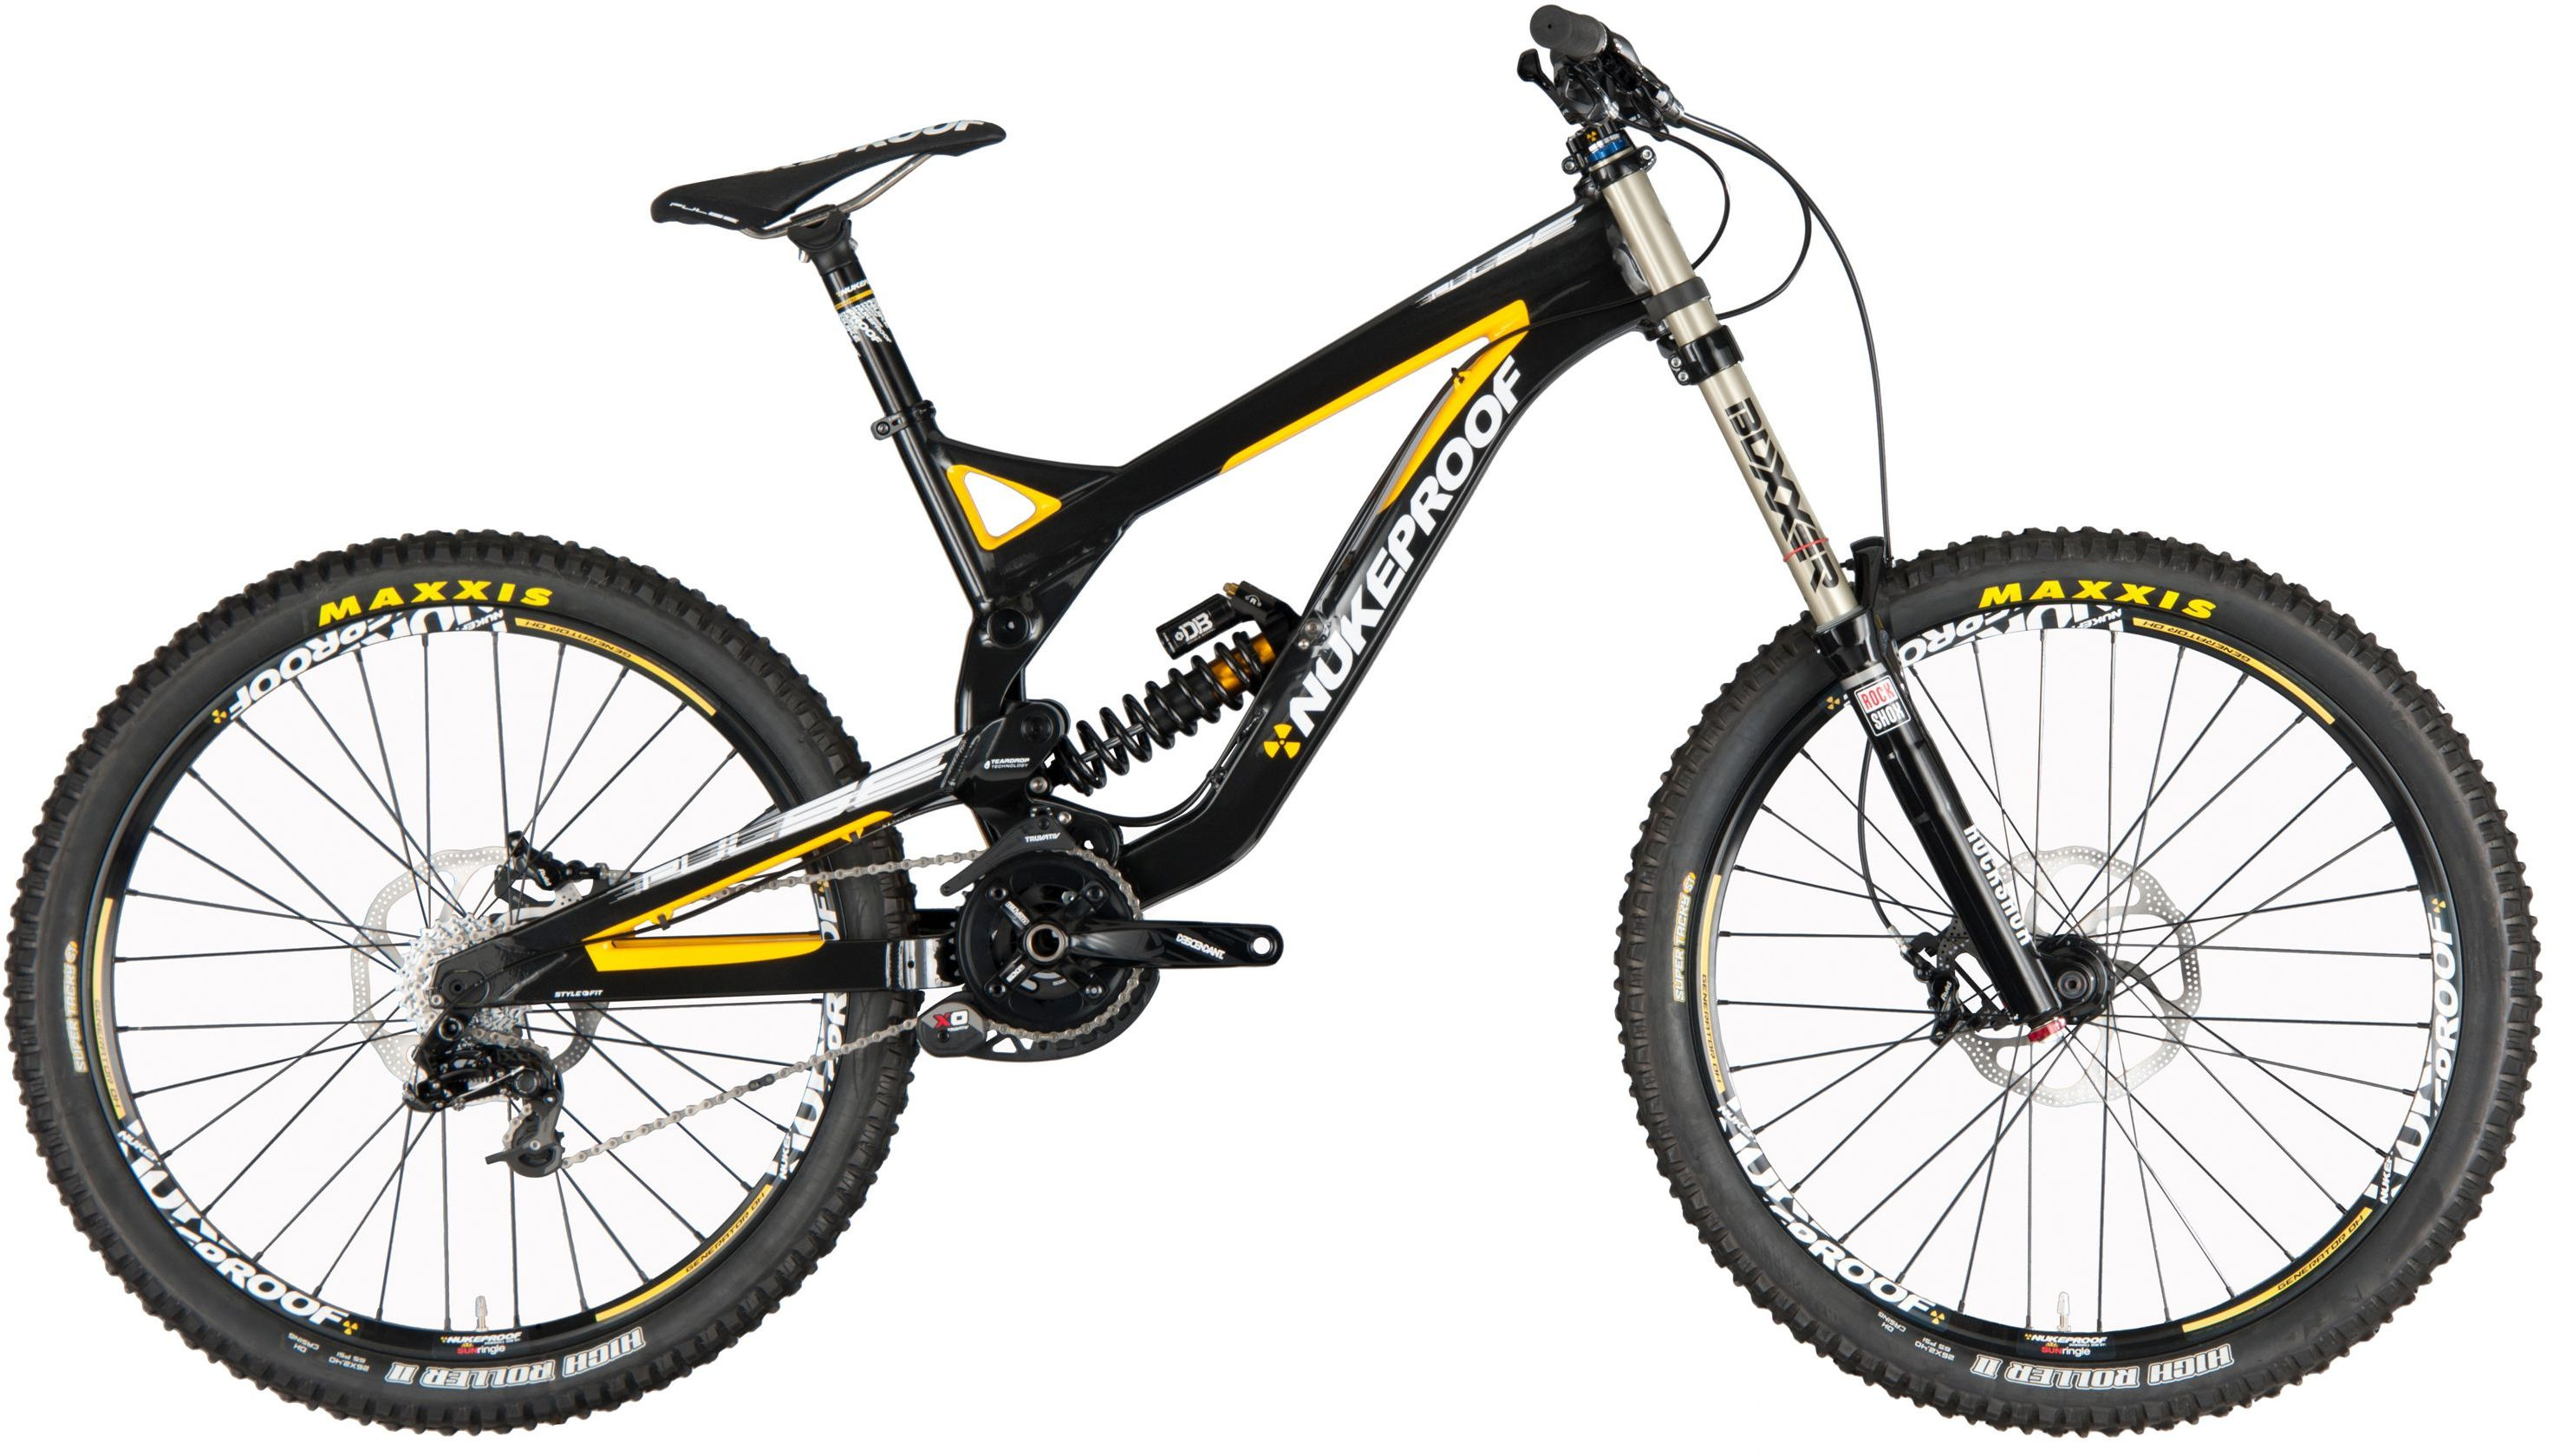 Nukeproof Pulse Dh Pro 2014 Review The Bike List